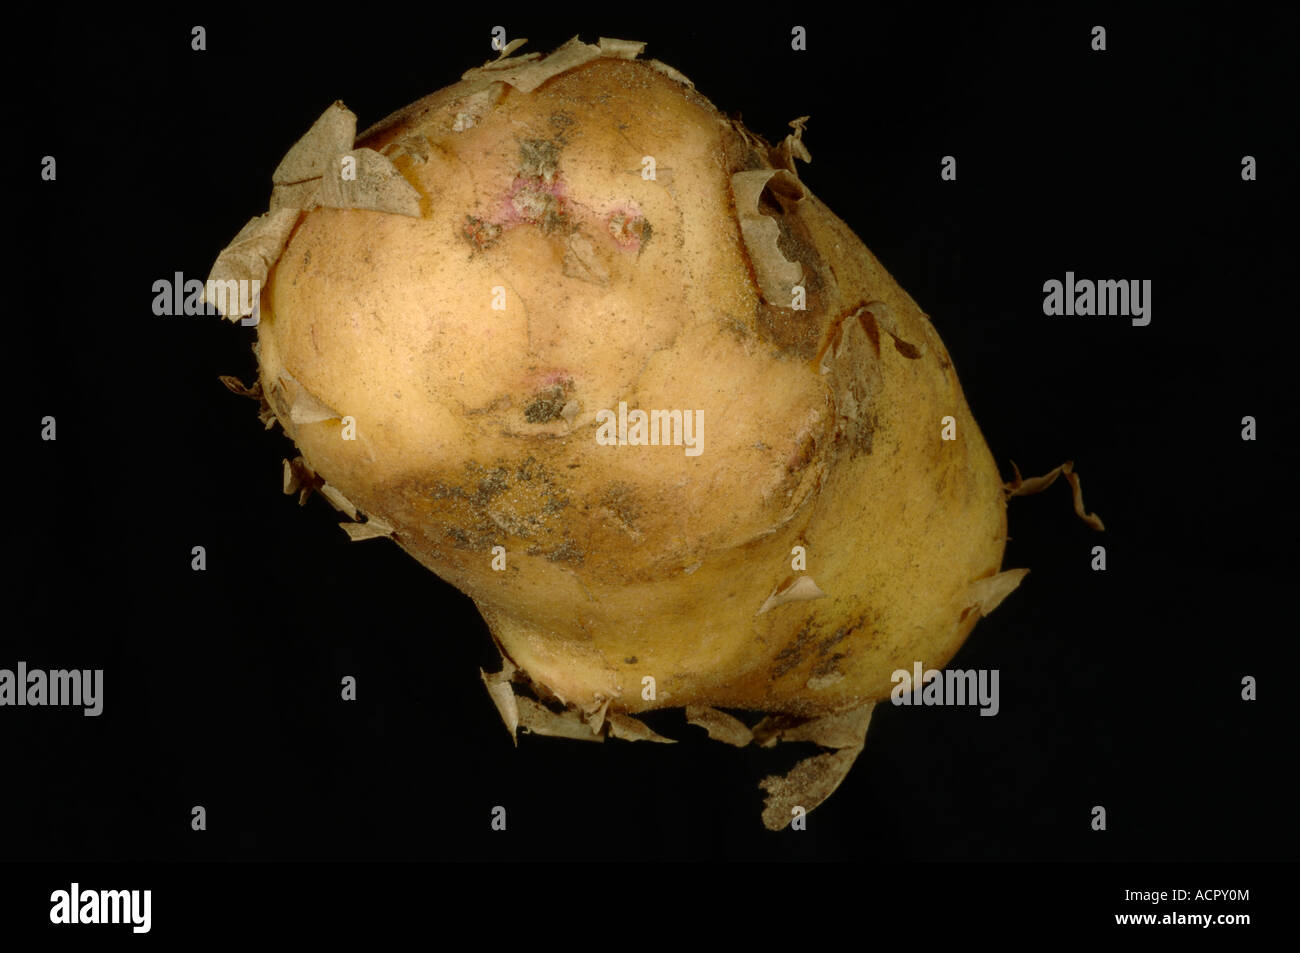 New potato tuber ex supermarket with loose outer skin - Stock Image